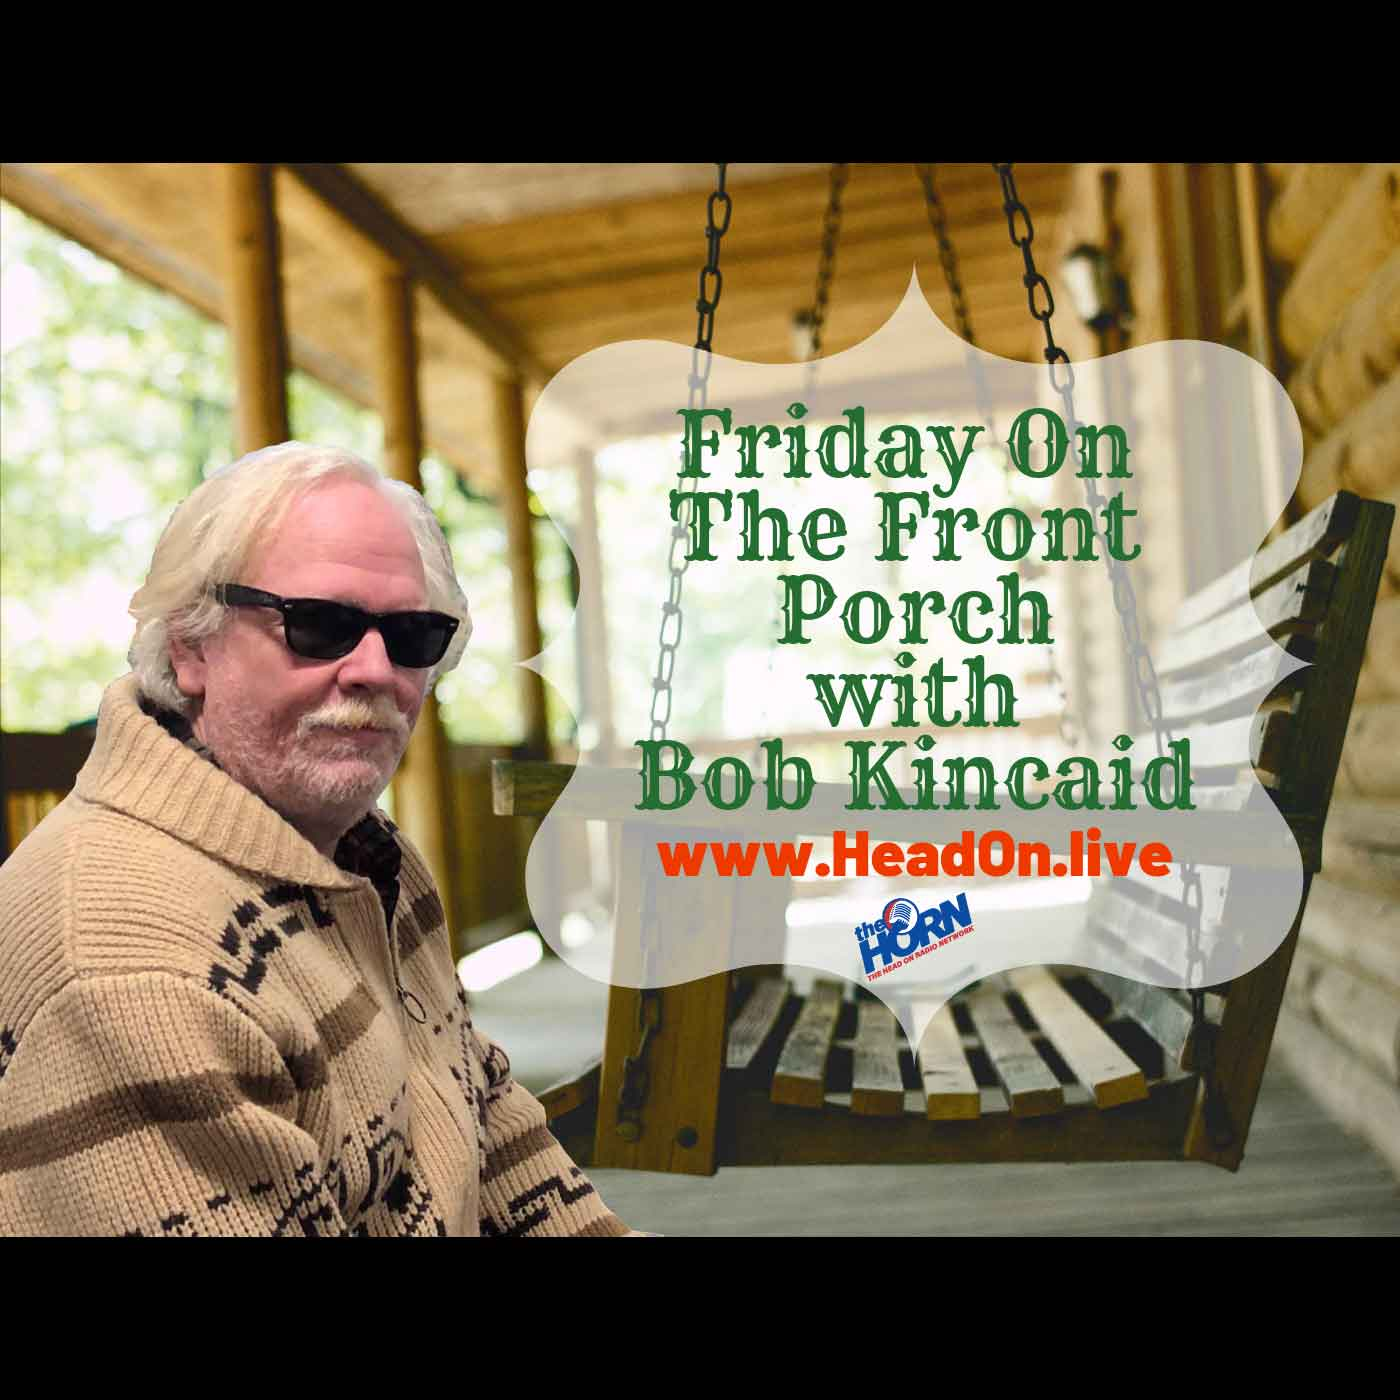 Friday-on-the-Front Porch, Head-ON With Bob Kincaid, 10 January 2020